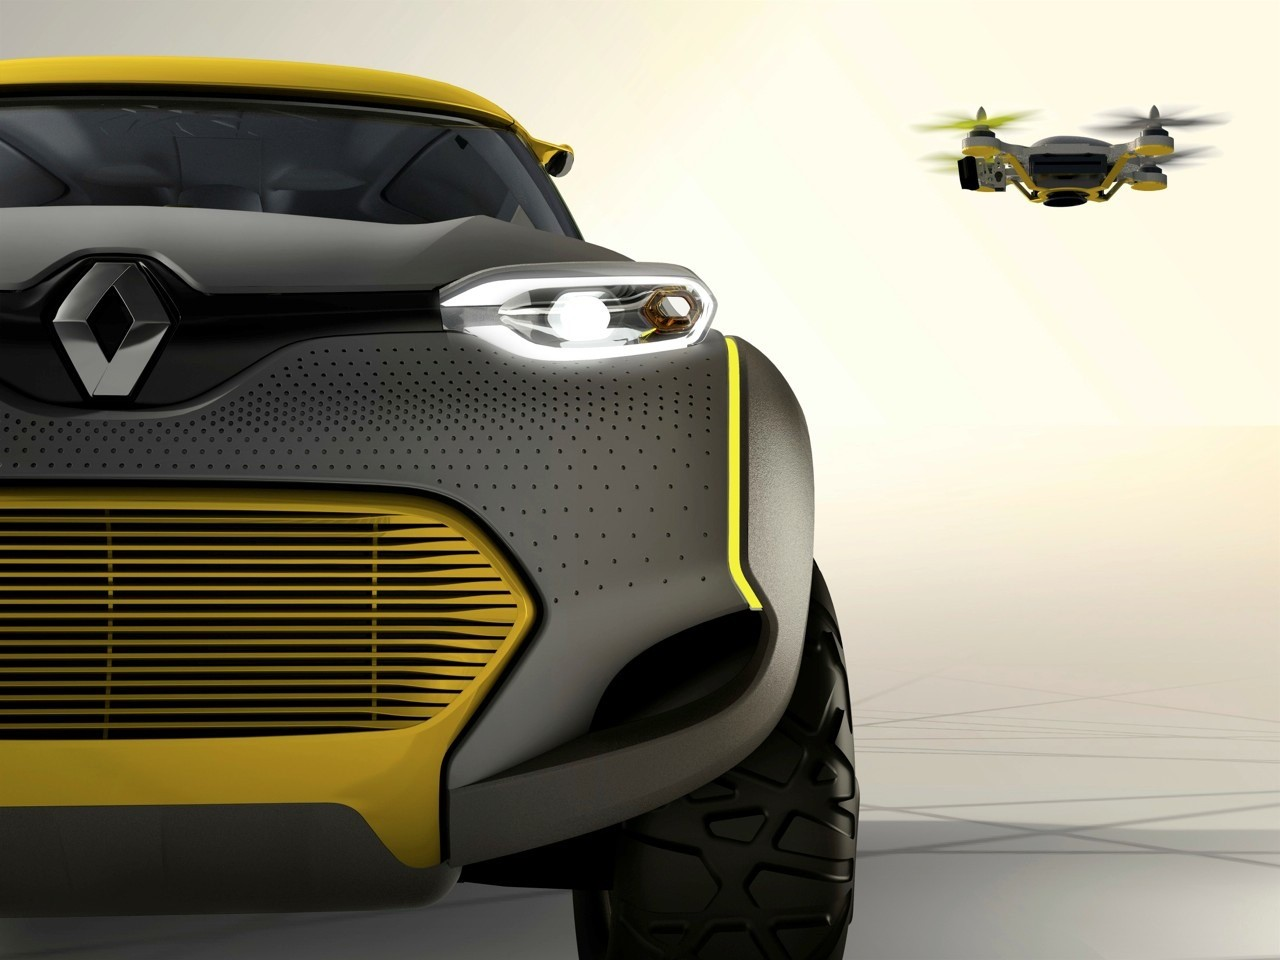 Renault Kwid Concept Gets Its Own Drone